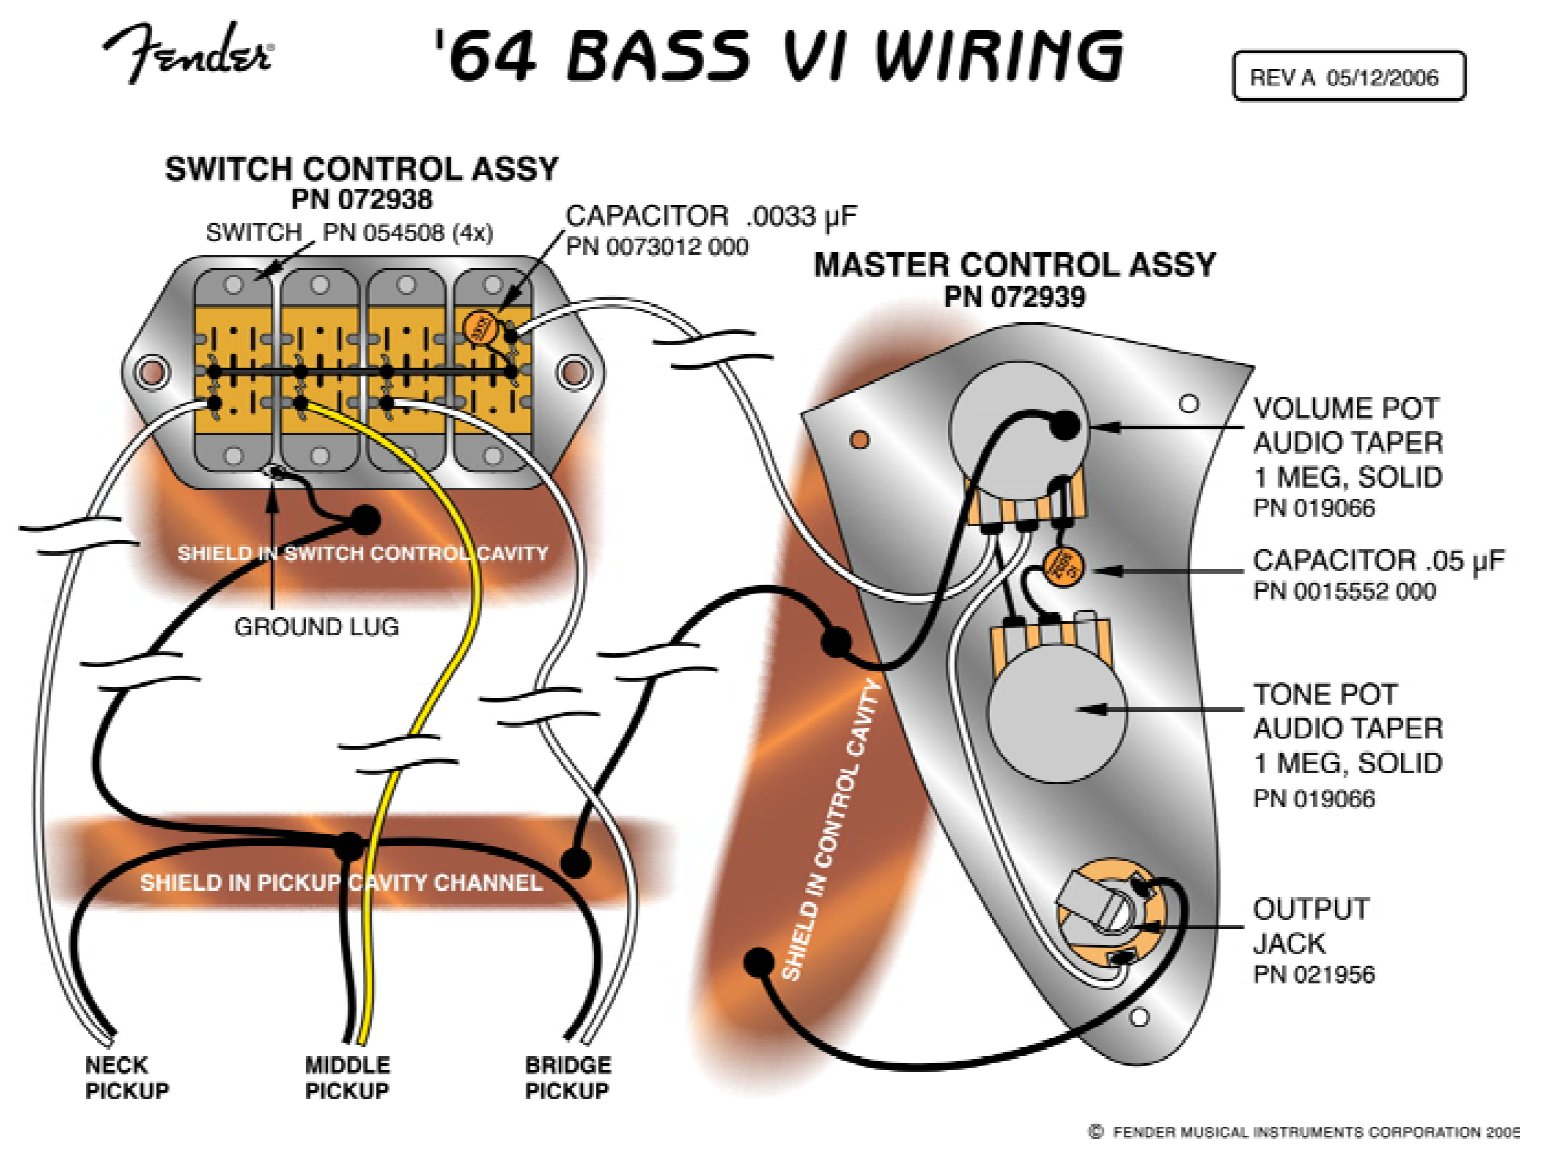 64 bass vi reissue wiring diagram jpg wiring diagram for fender mustang the wiring diagram fender mustang 1 wiring diagram